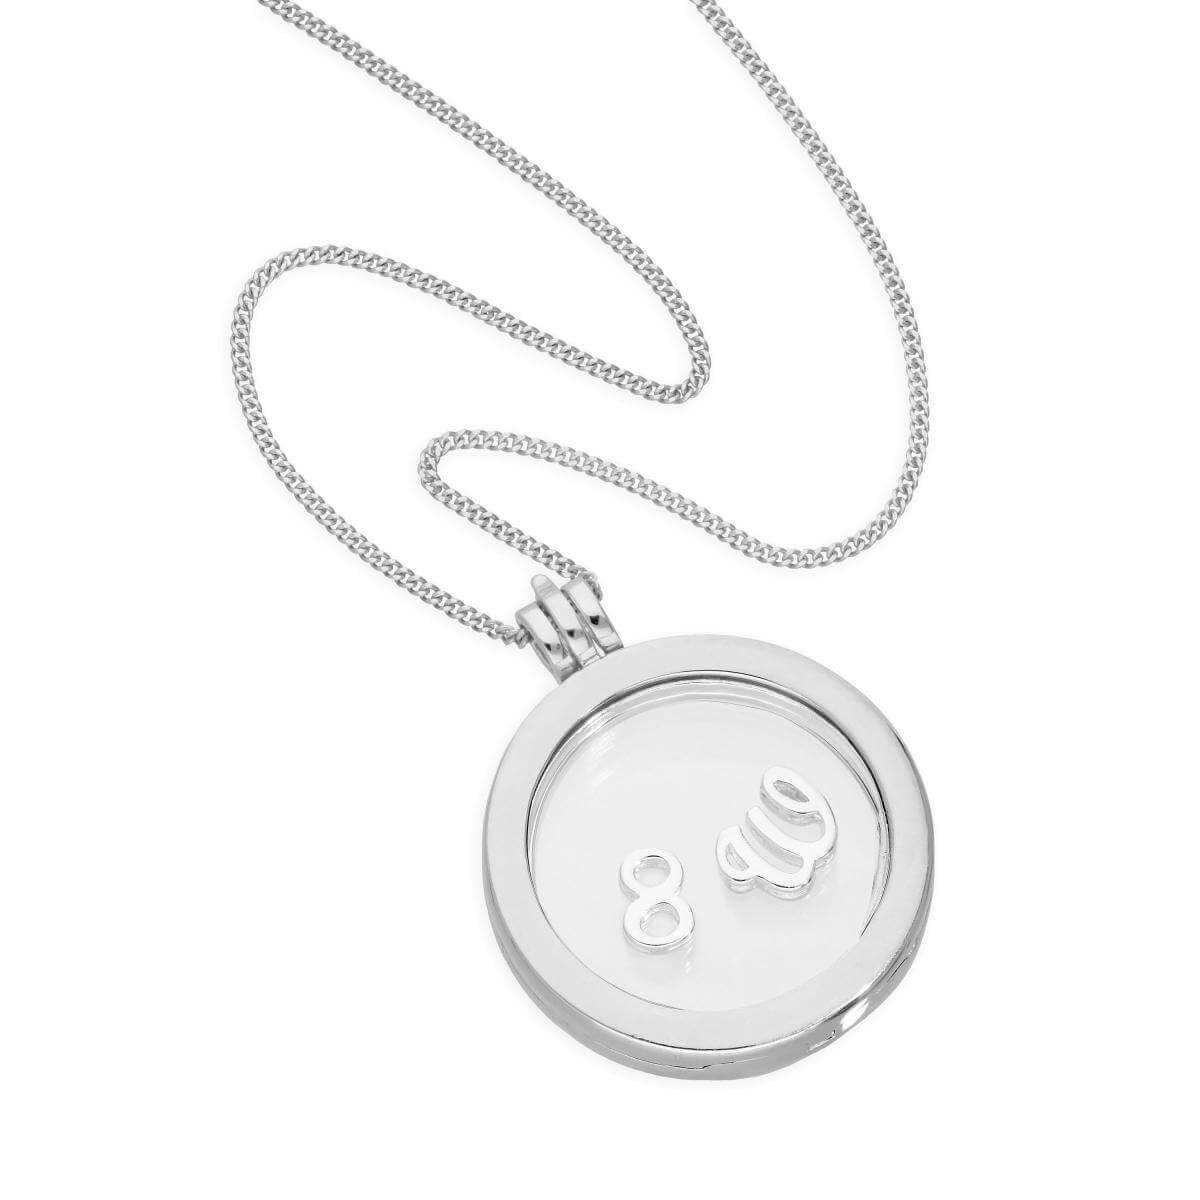 Large Floating Letter & Number Charm Round Locket in Sterling Silver